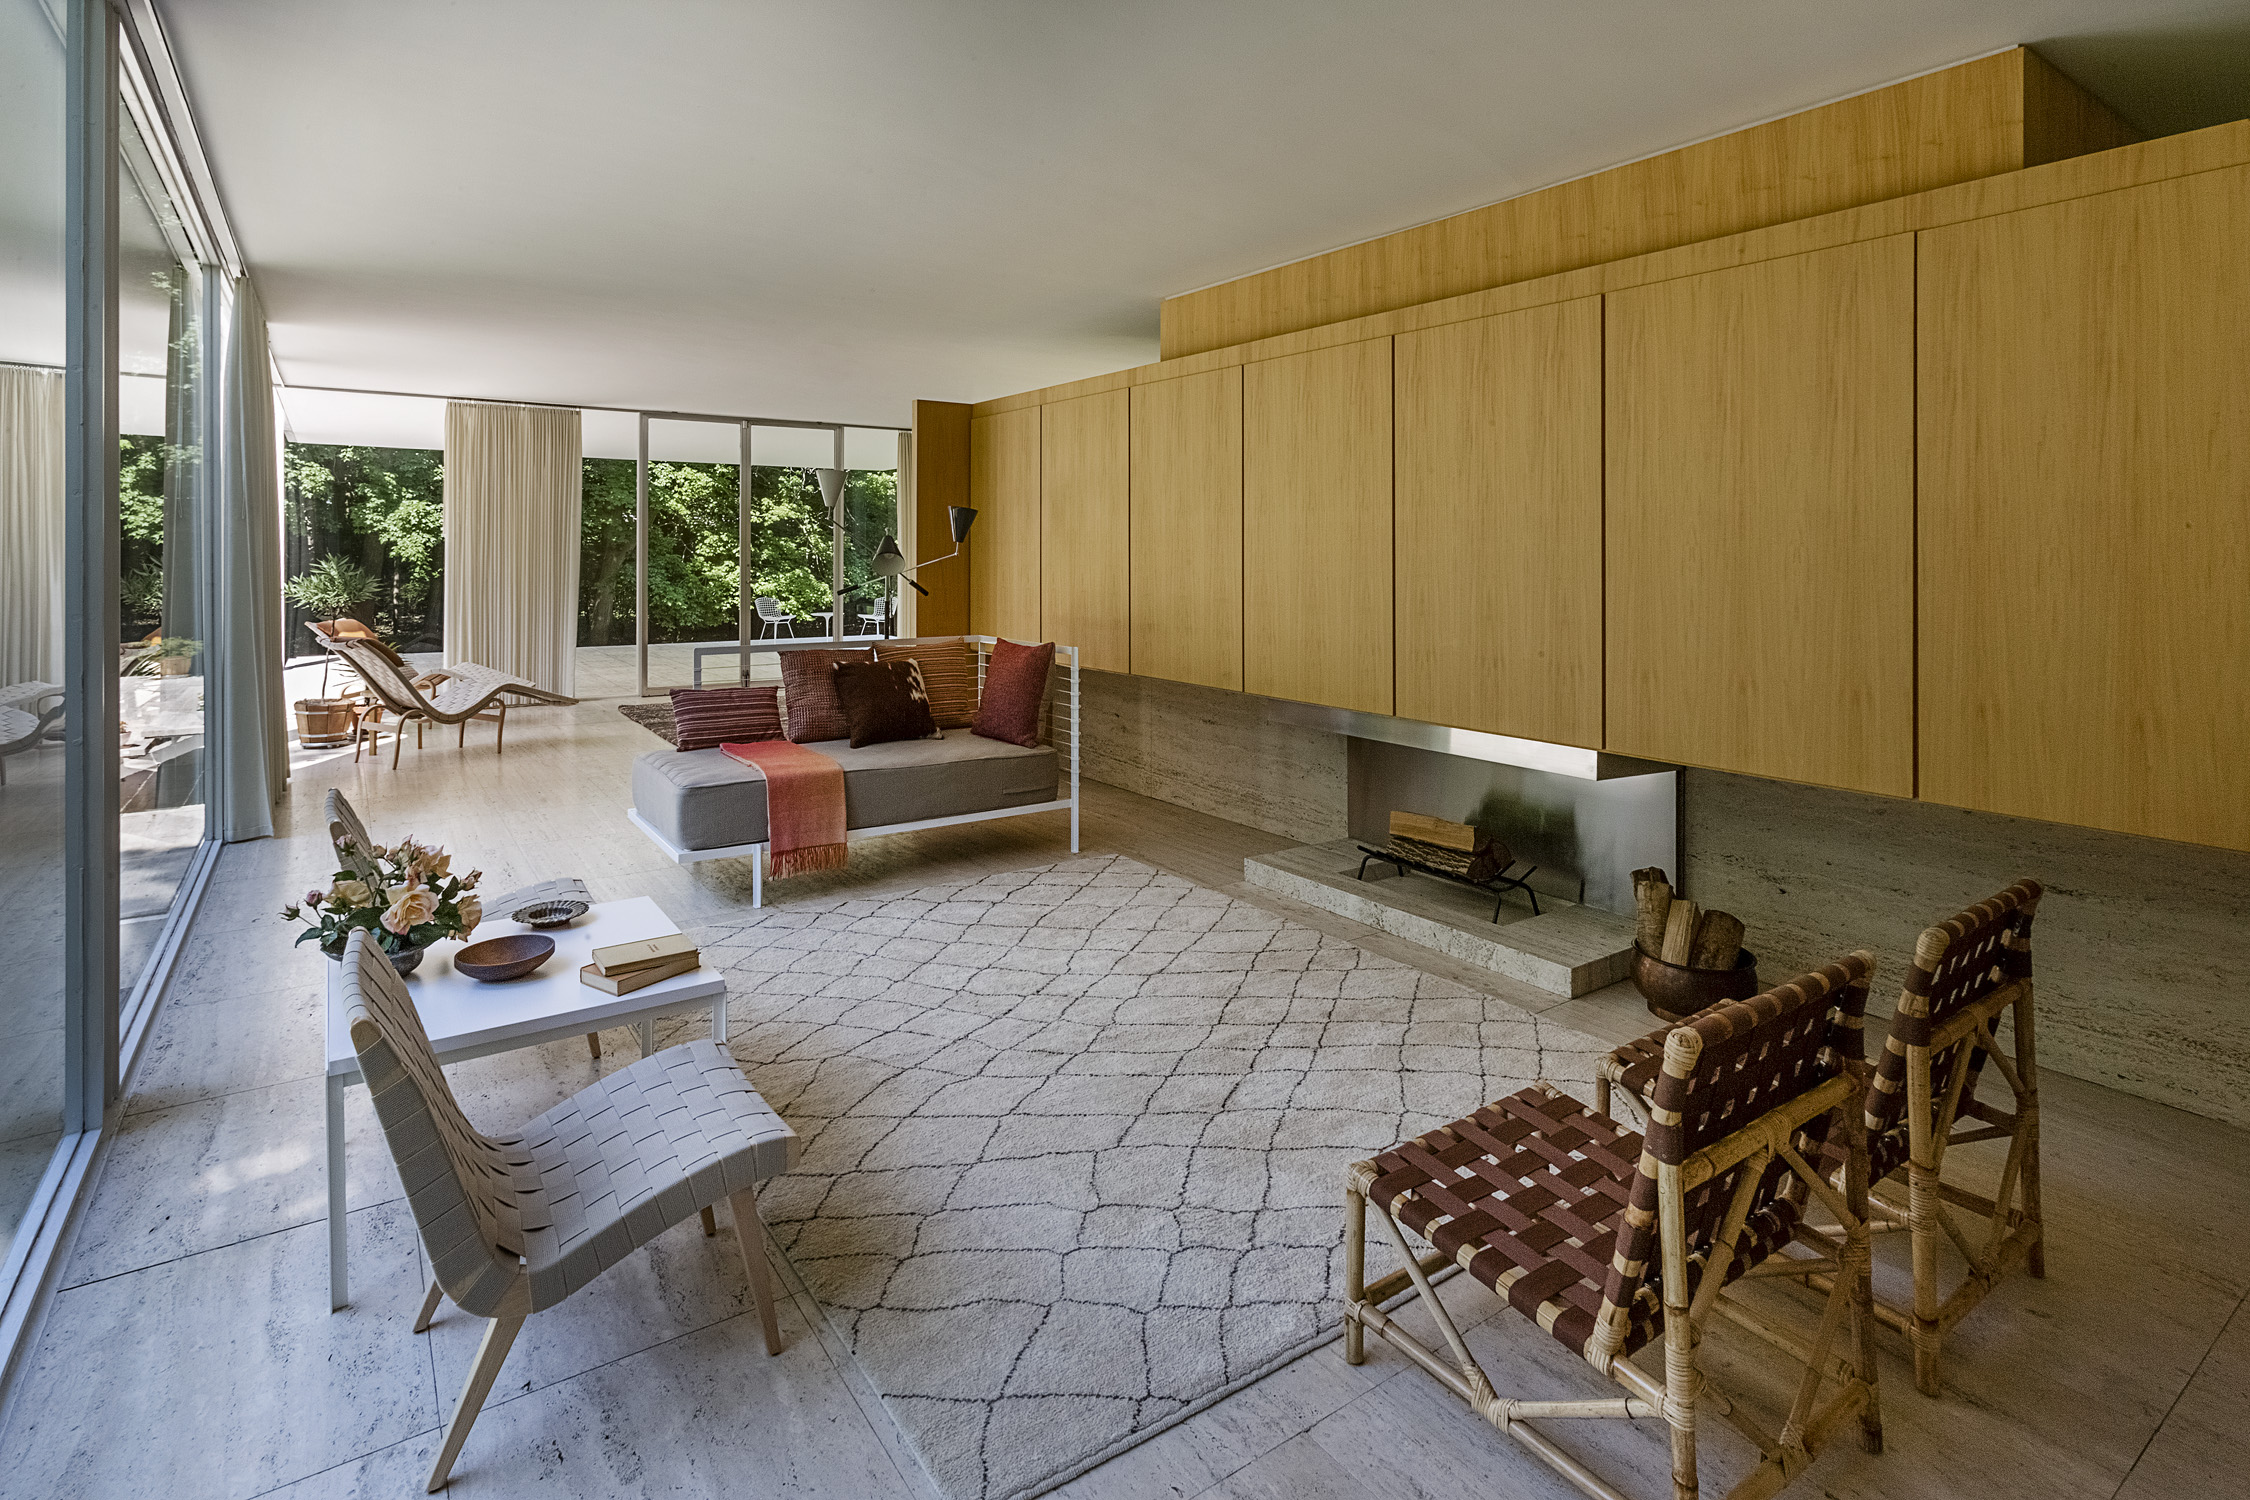 The Farnsworth House gets period decor in an effort to shine light on its mysterious owner